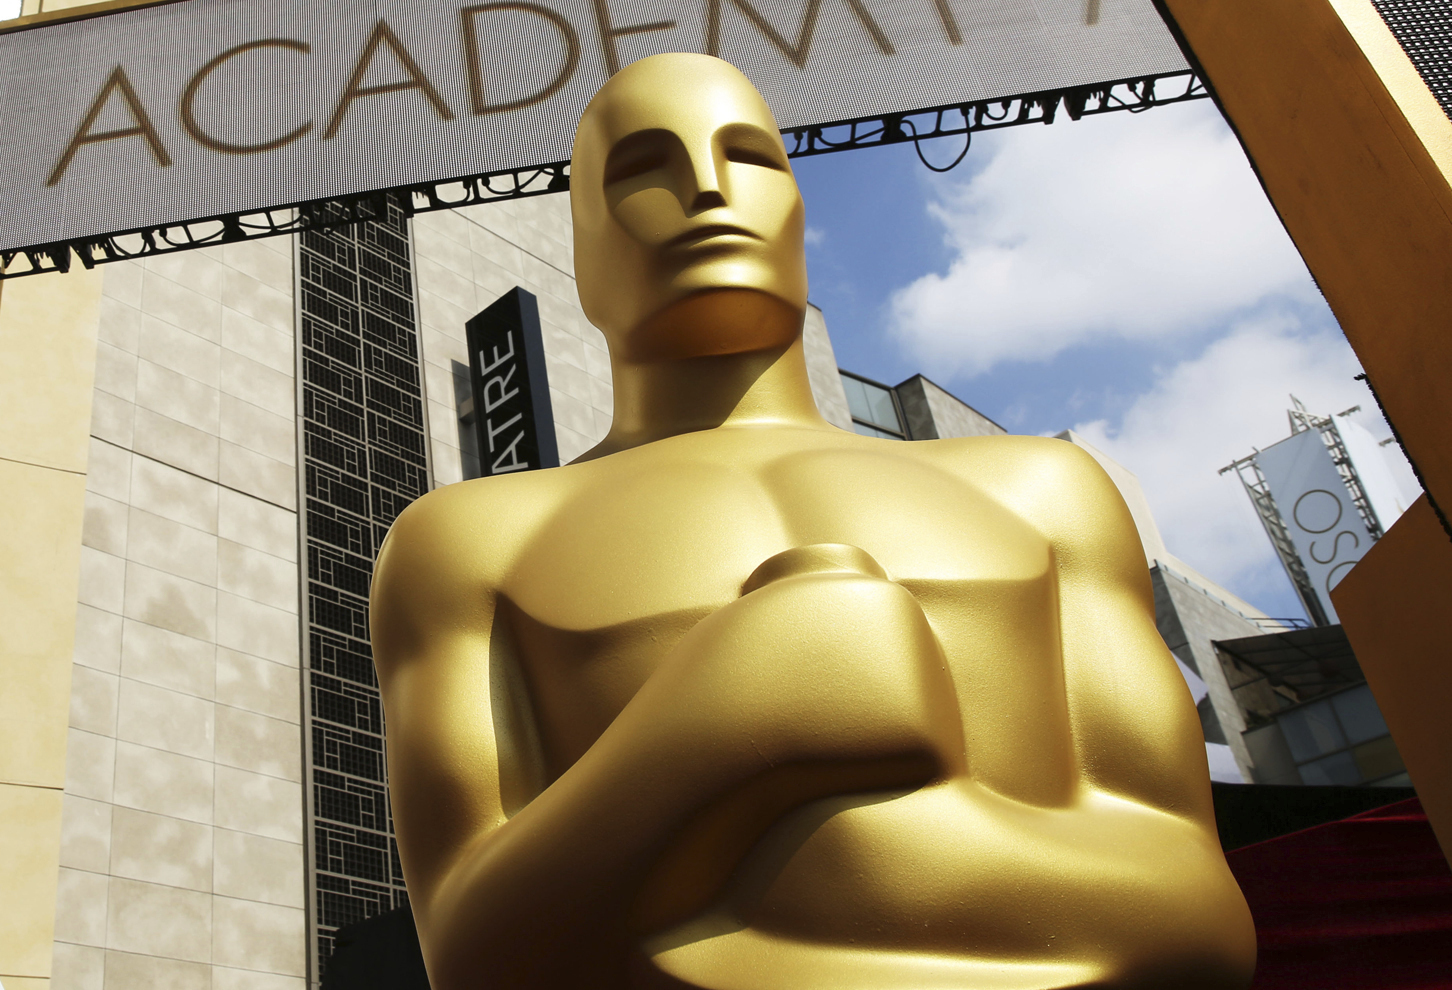 An Oscar statue appears outside the Dolby Theatre for the 87th Academy Awards in Los Angeles on Feb. 21, 2015. (Matt Sayles/Invision/AP, File)